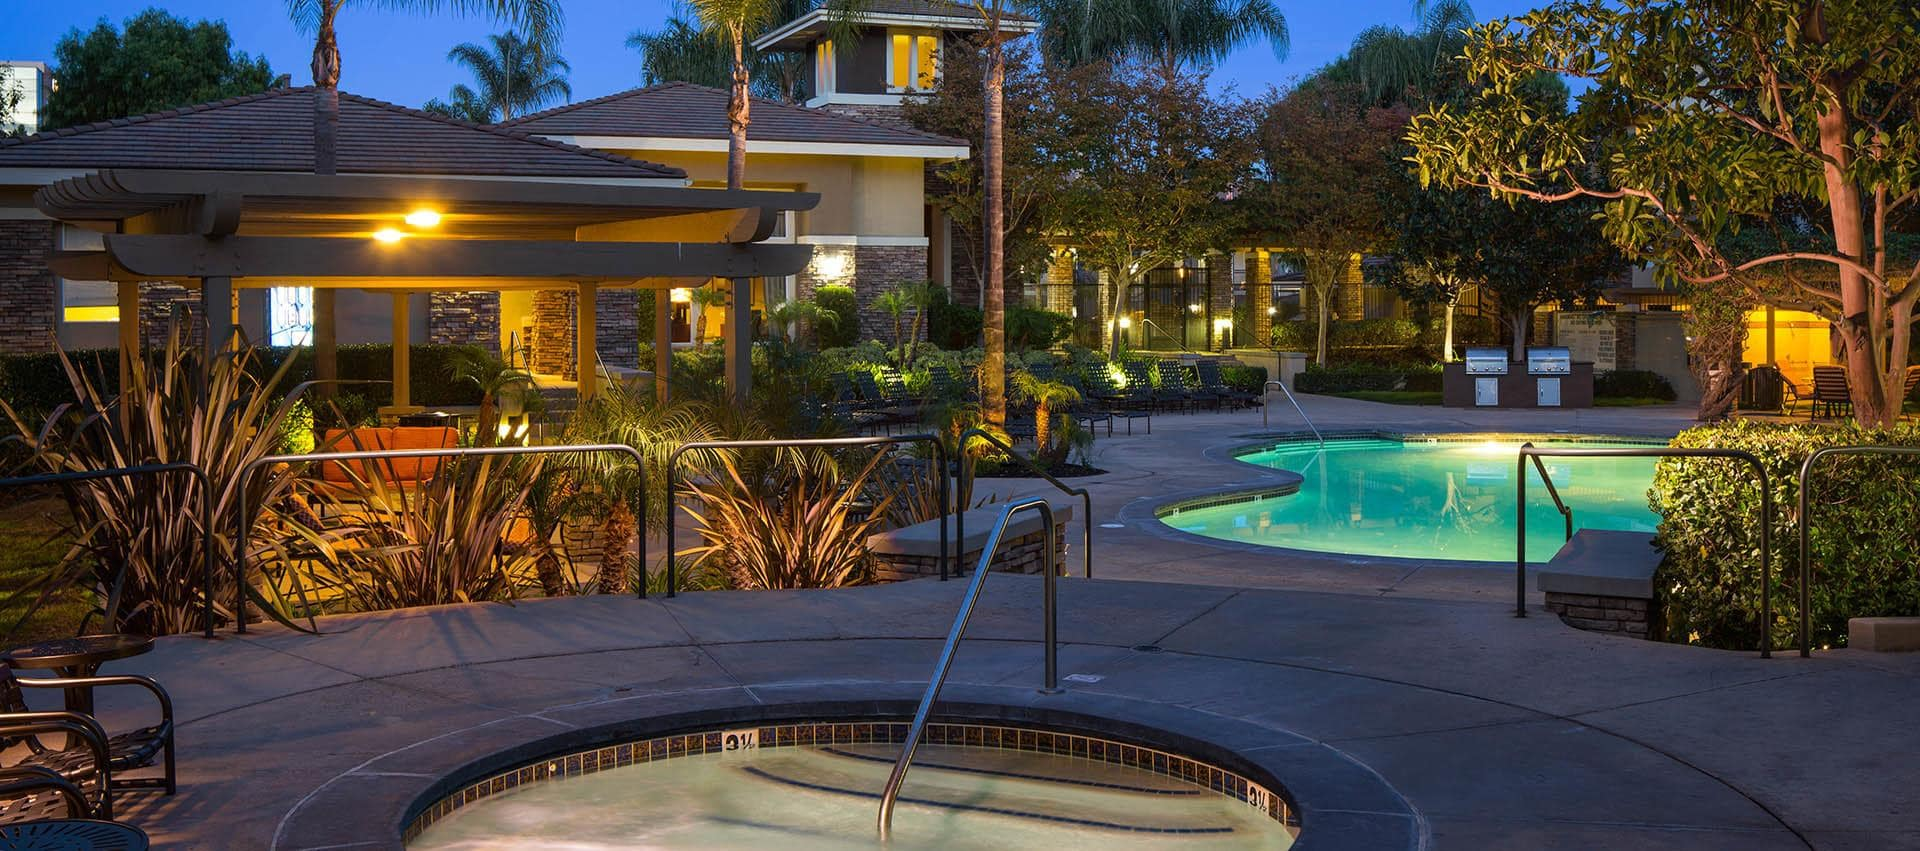 Hot Tub And Pool At Night in Alize at Aliso Viejo Apartment Homes in Aliso Viejo, California